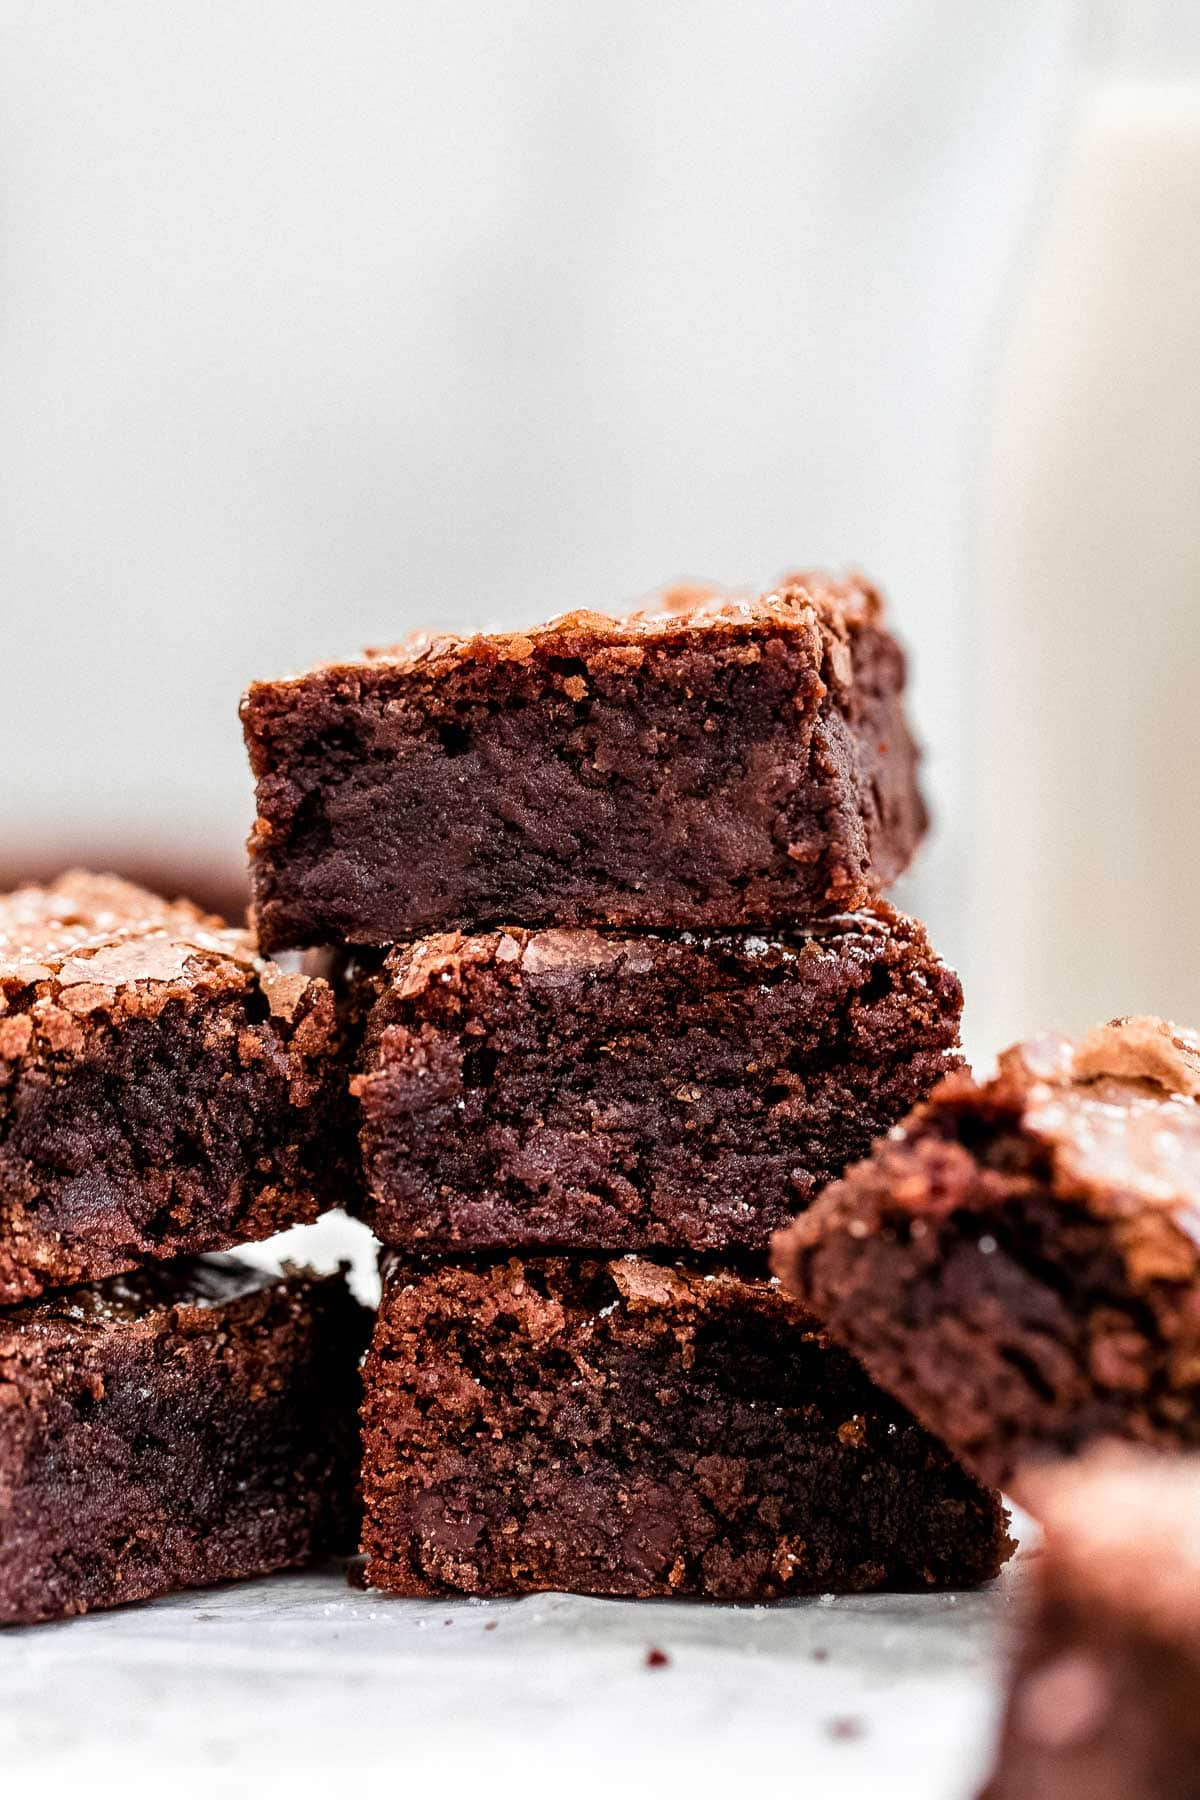 Three homemade fudgy brownies stacked on each other to show texture.